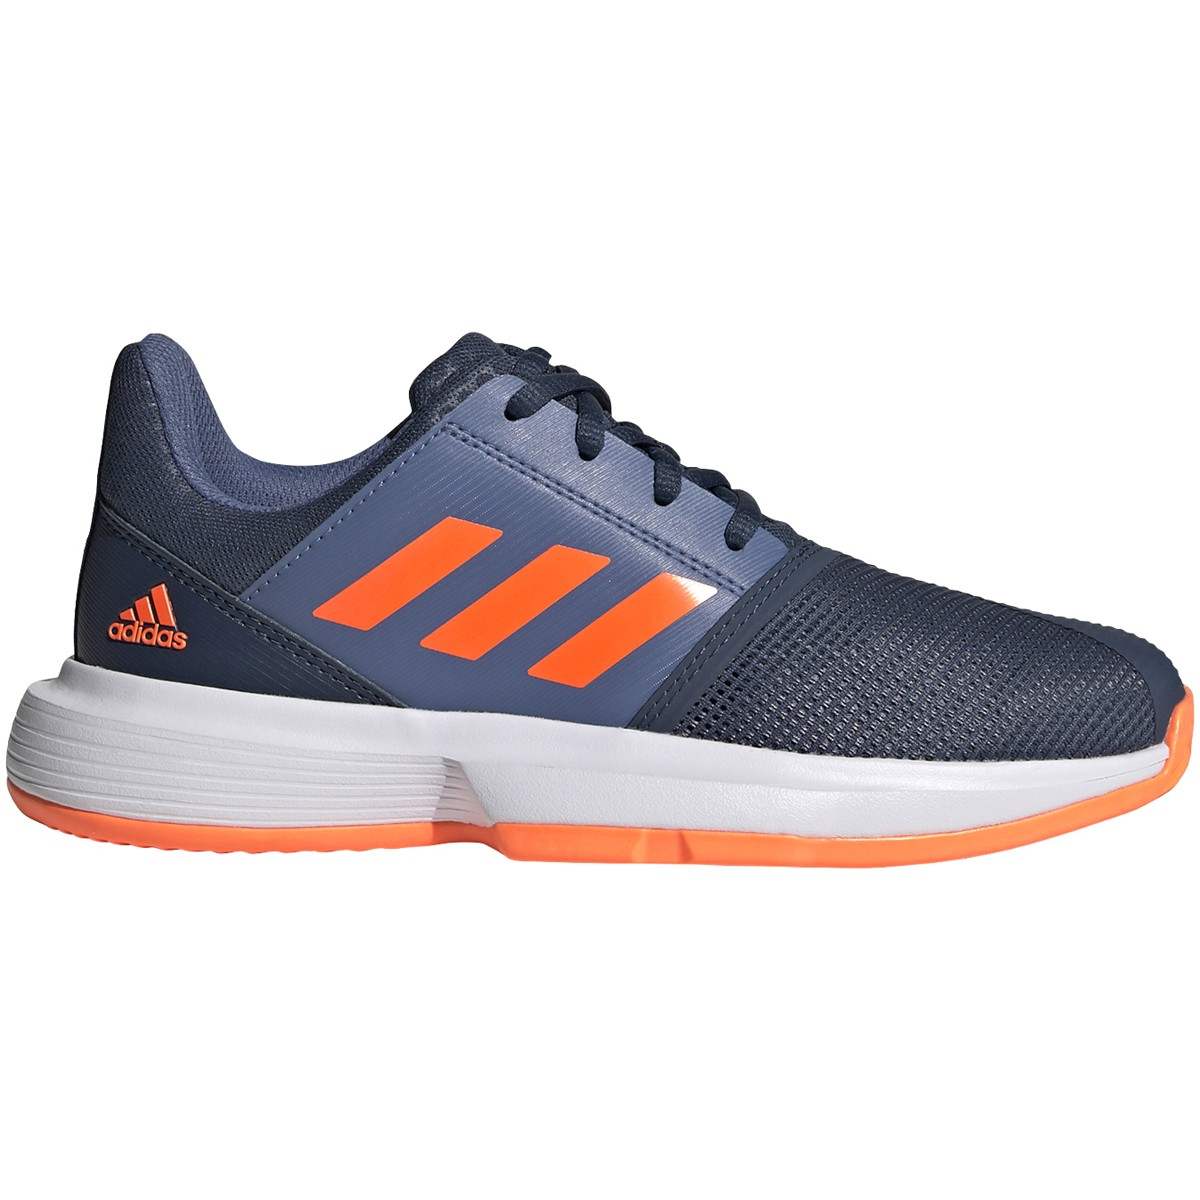 Chaussures adidas Junior Courtjam XJ Toutes Surfaces - Chaussures ...